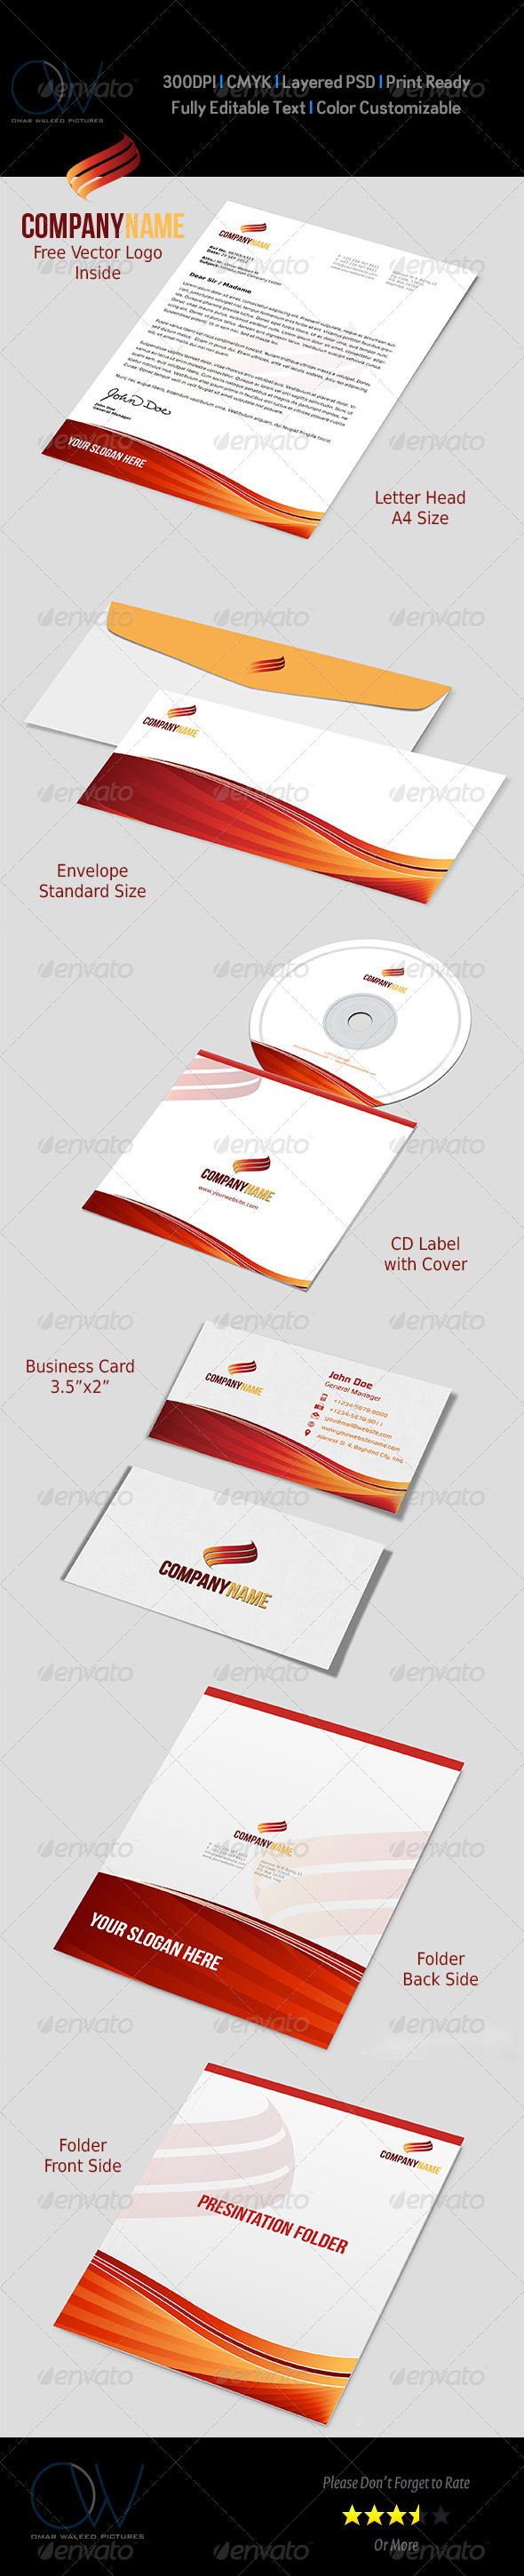 Corporate Stationery Pack Vol.1 - Stationery Print Templates